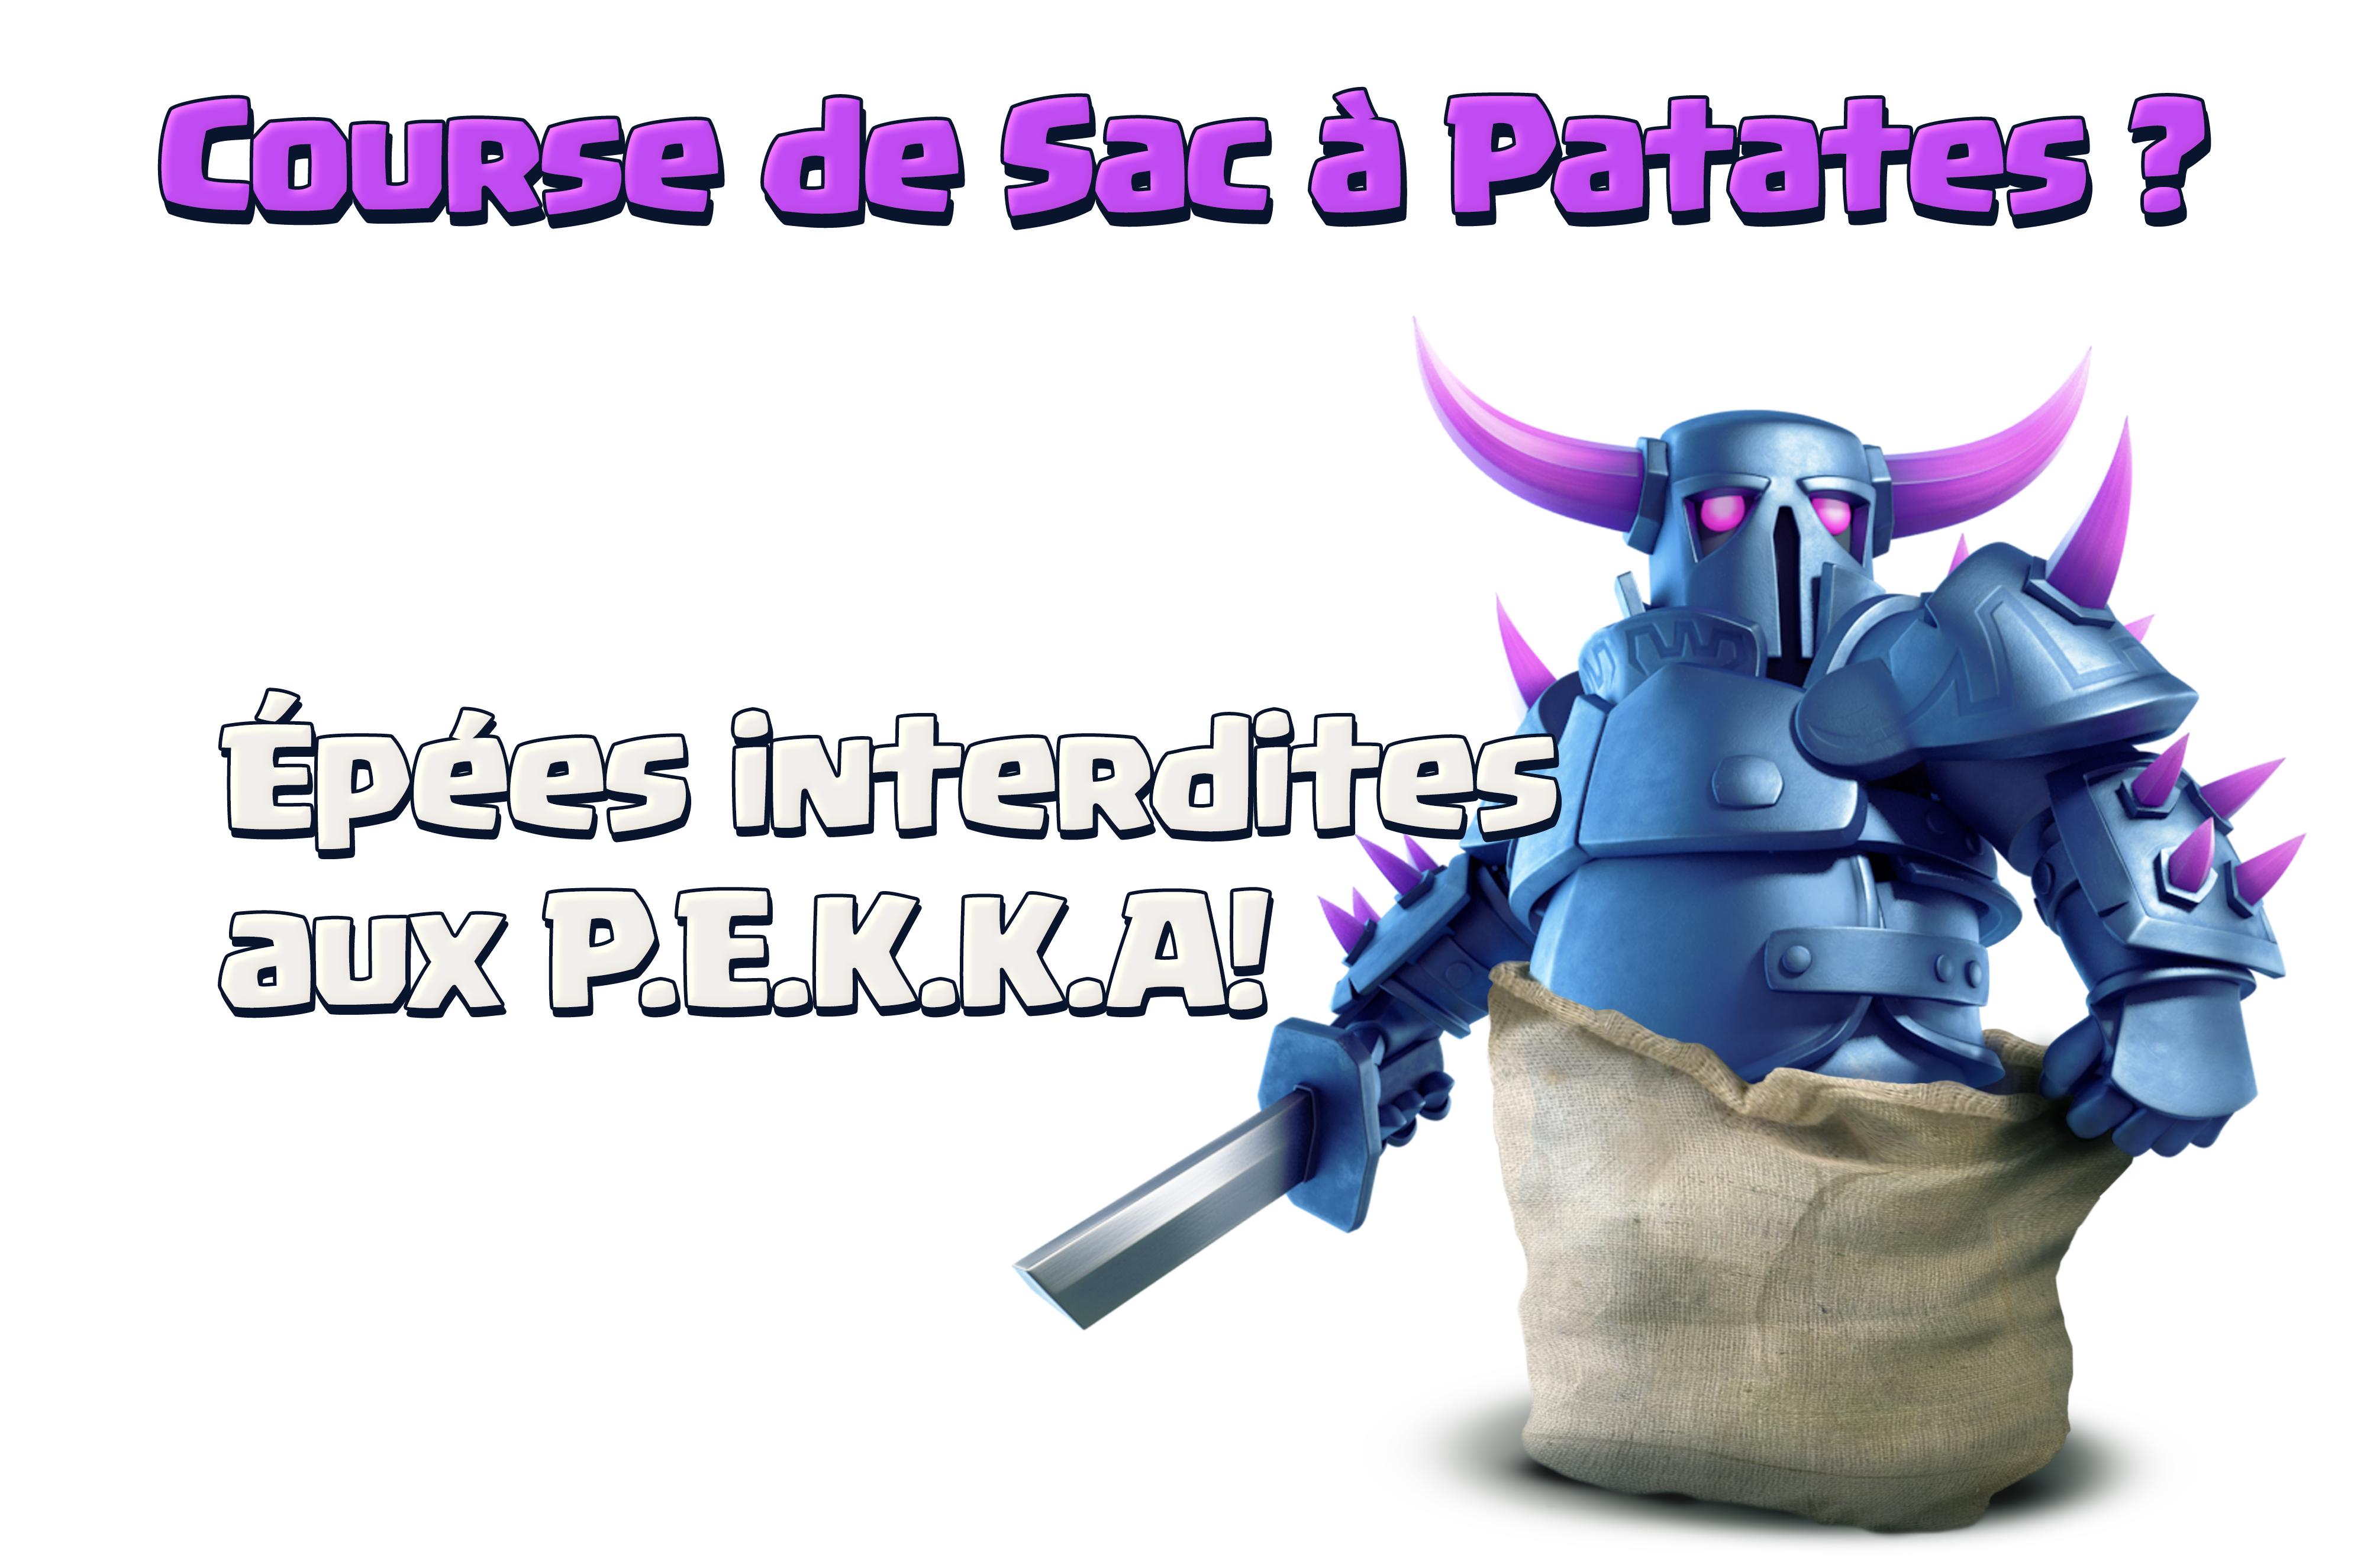 coursedesacfr.png?mtime=20171214051824#asset:5197